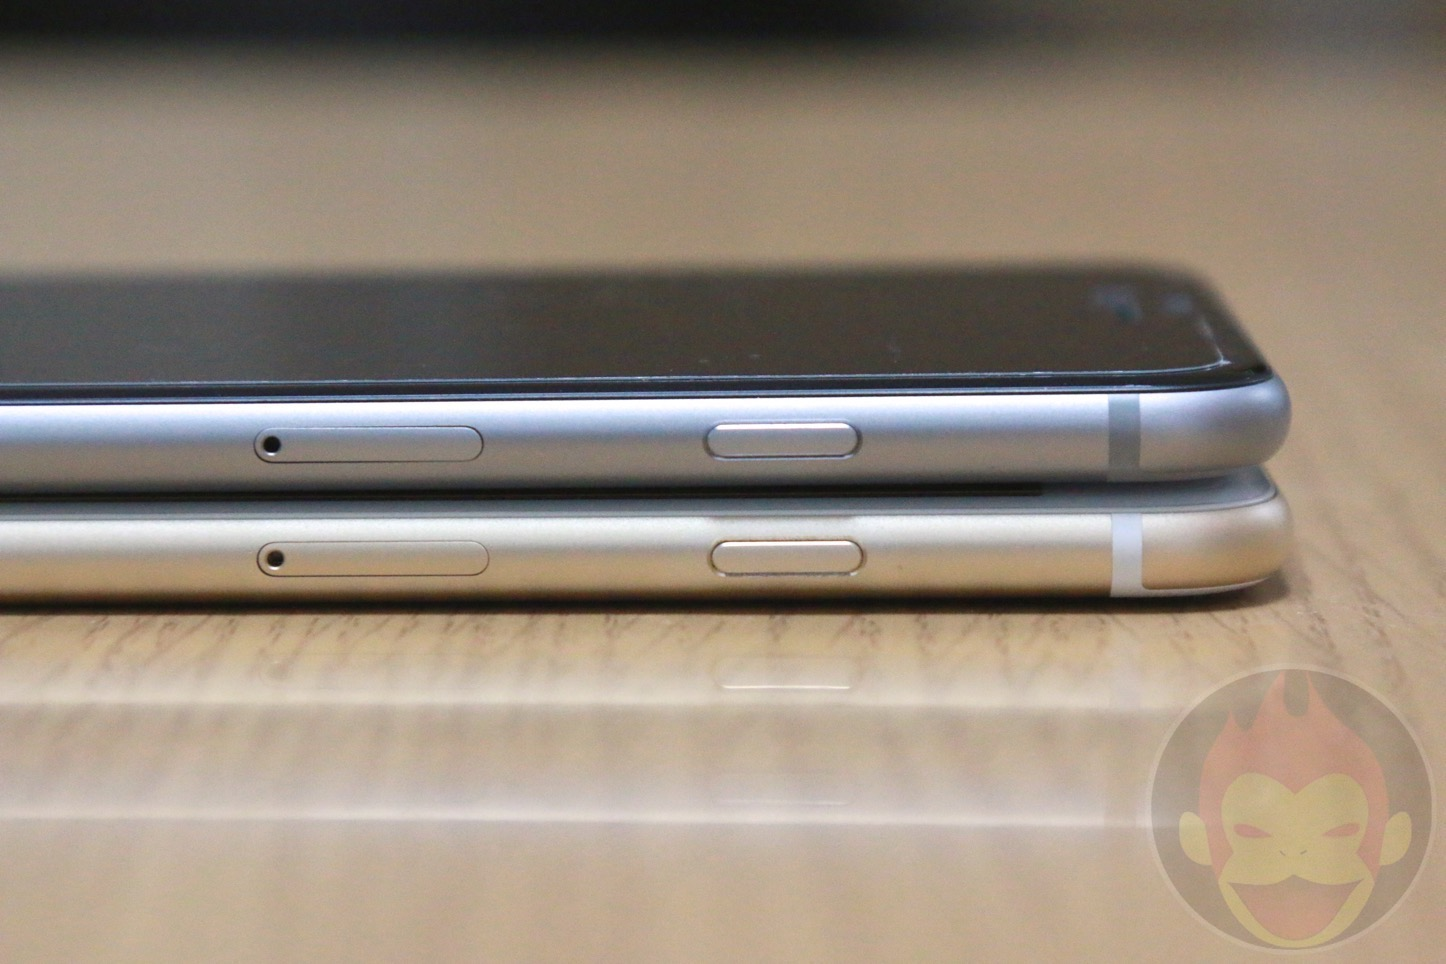 iPhone-6s-Plus-Photo-Review-33.jpg